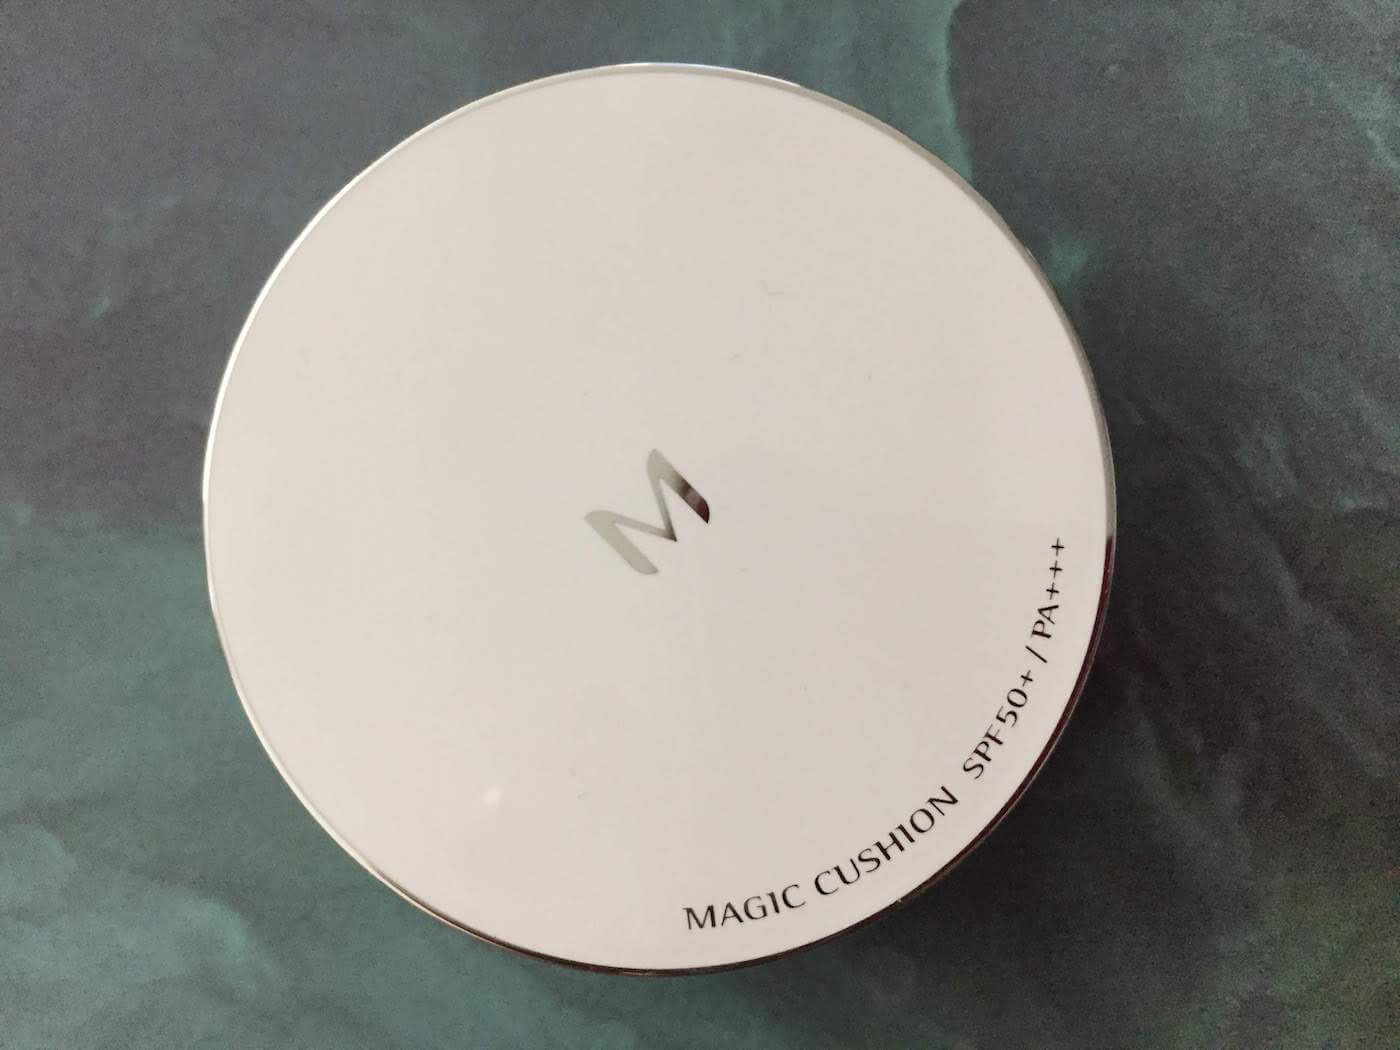 Missha Magic Cushion SPF 50 review (No. 27) packaging